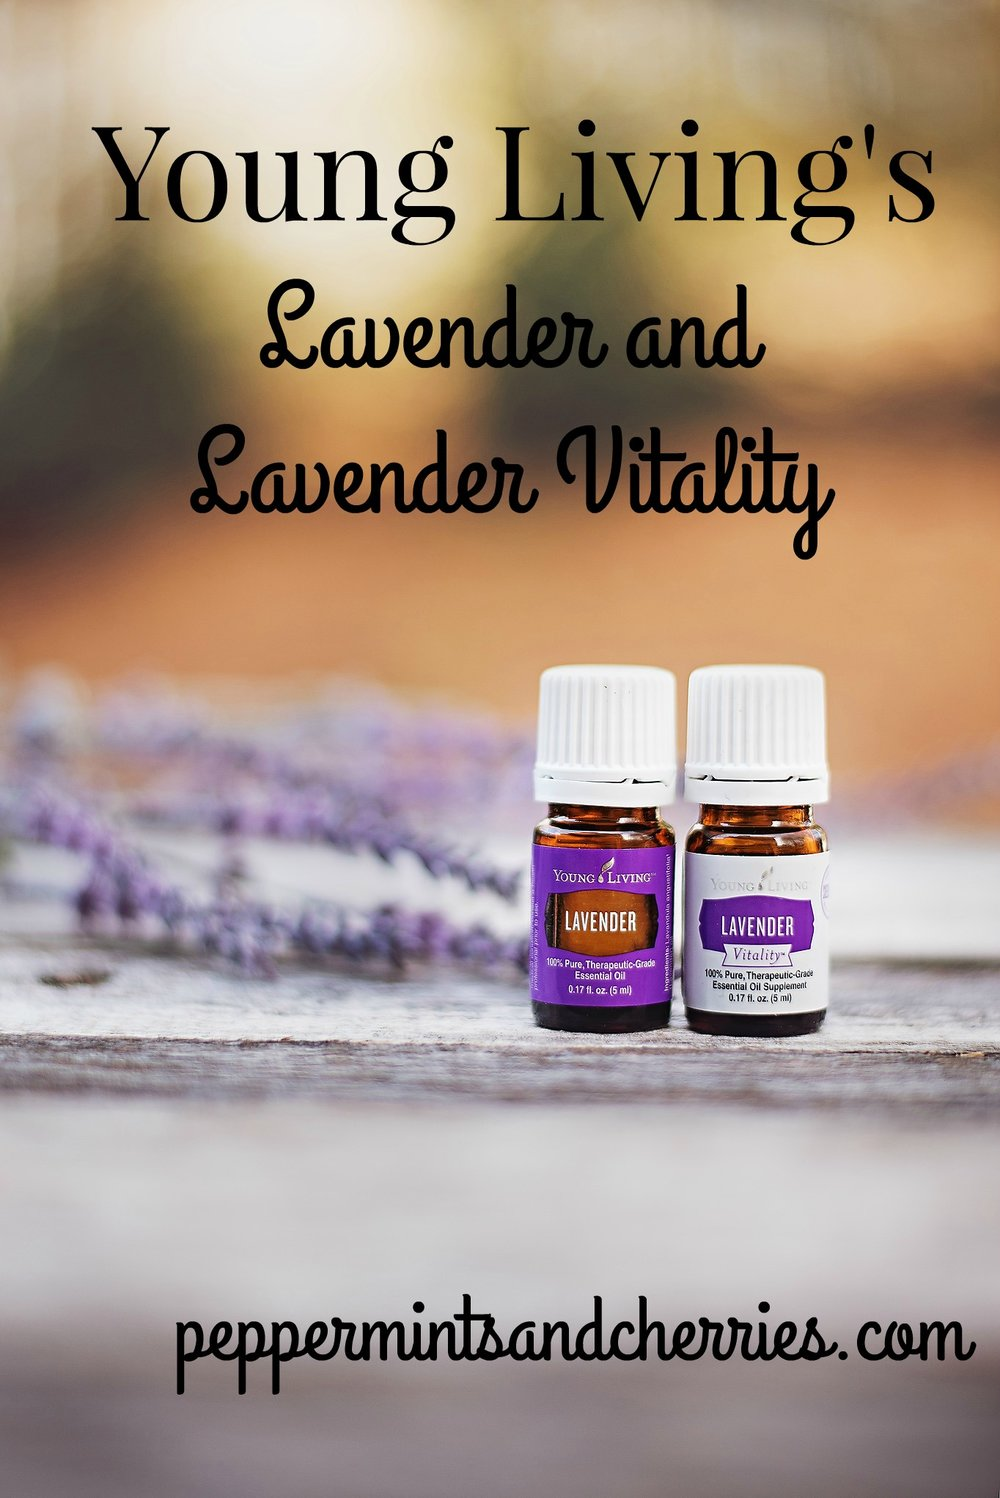 Young Living's Lavender.jpg